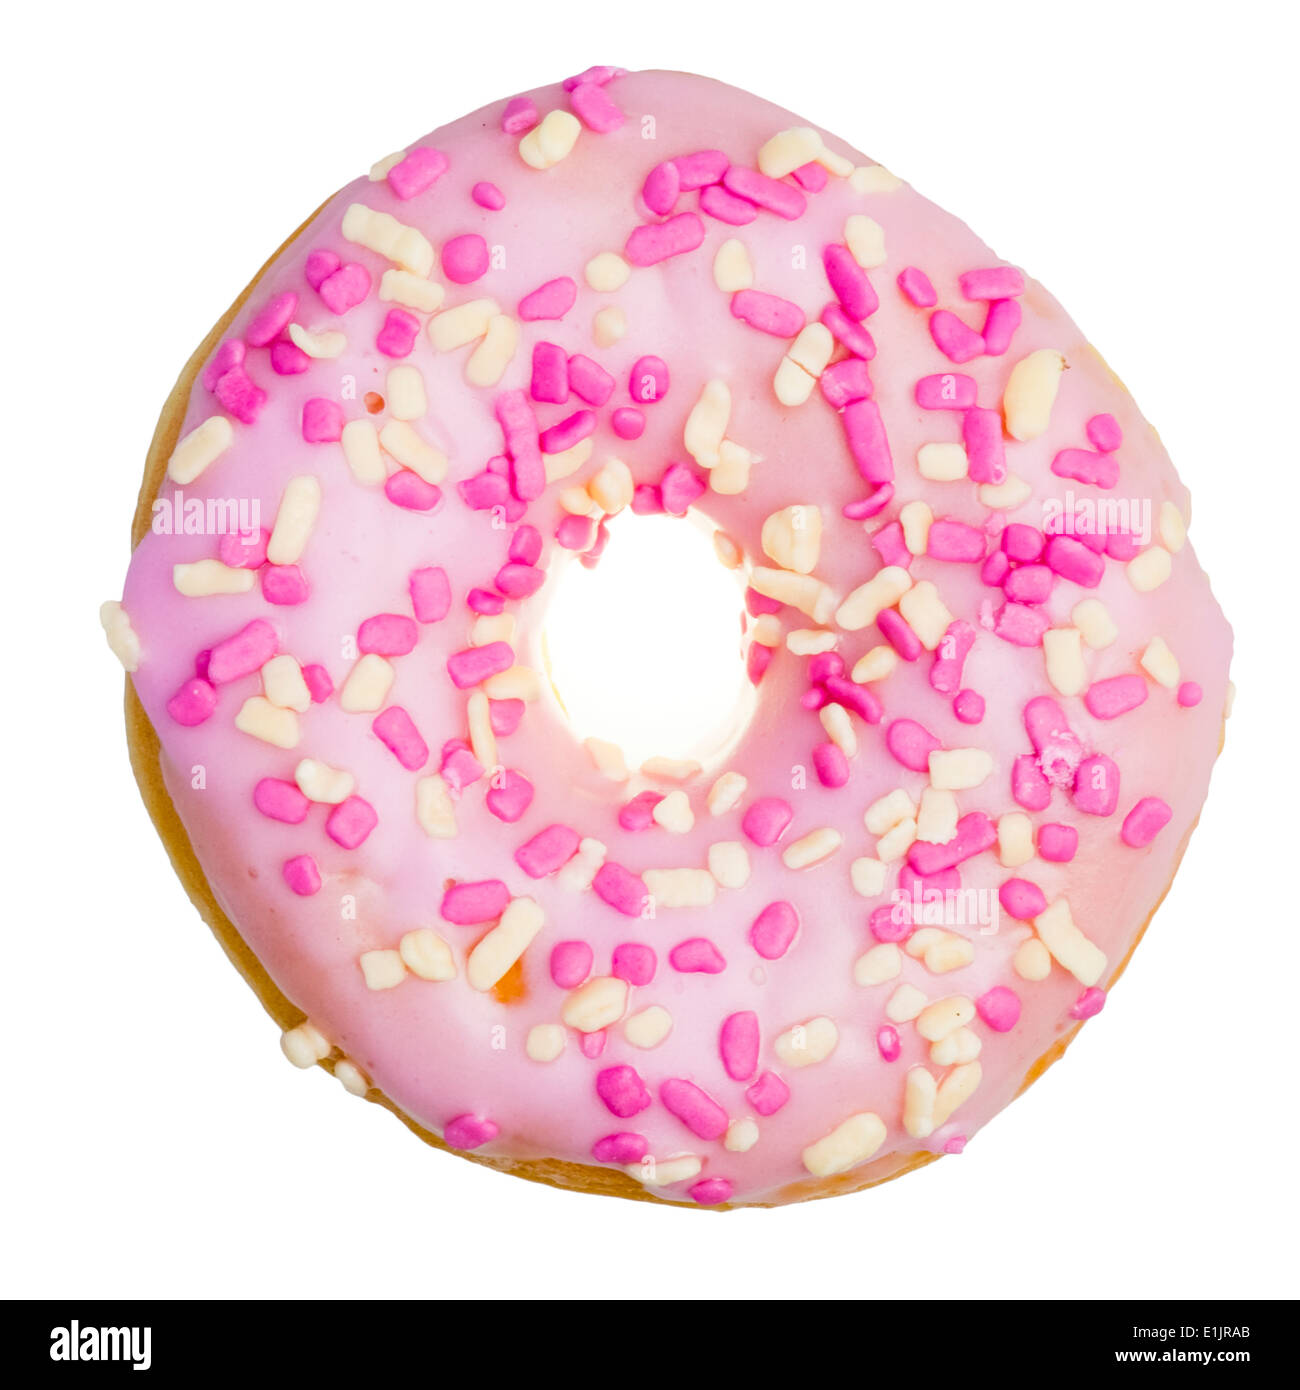 Doughnut ring with sprinkles & pink icing  Single Donut